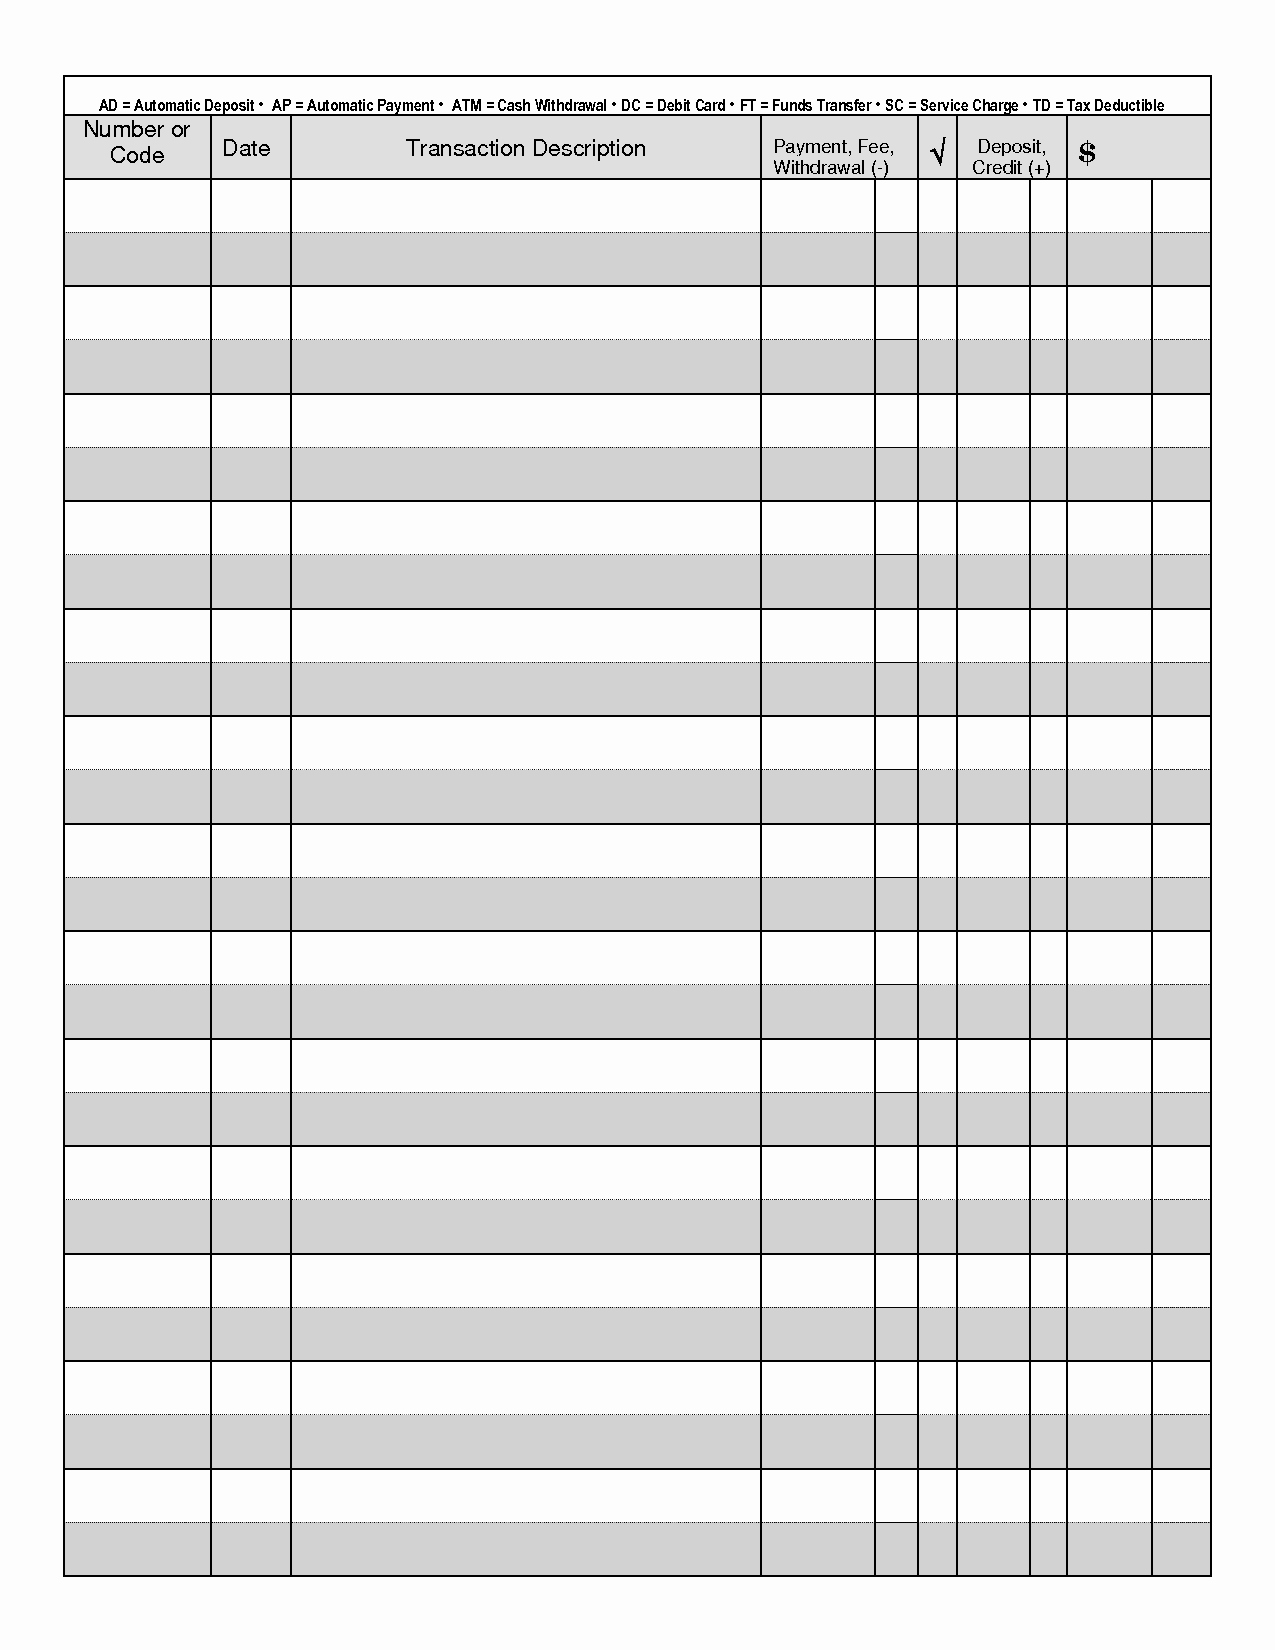 Print Your Own Checks Template Best Of Blank Check Register Printable Search Results